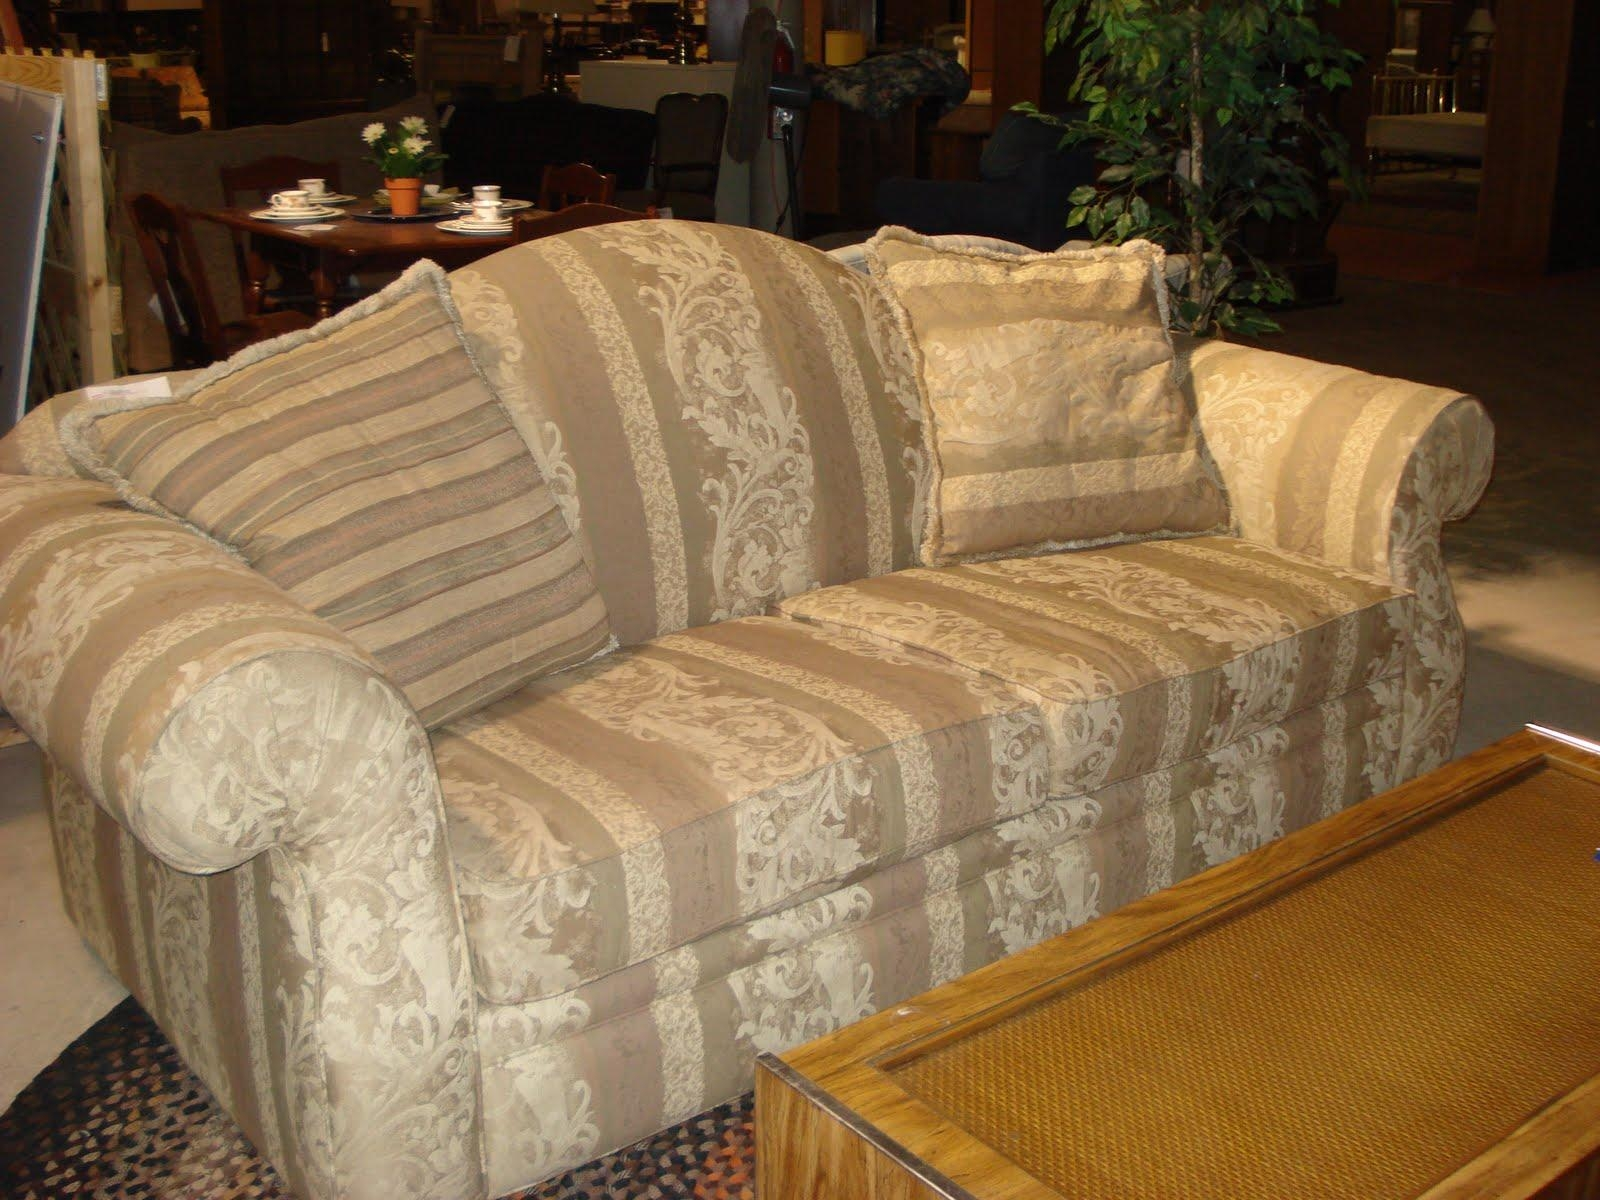 17 Alan White Sofa | Carehouse pertaining to Alan White Couches